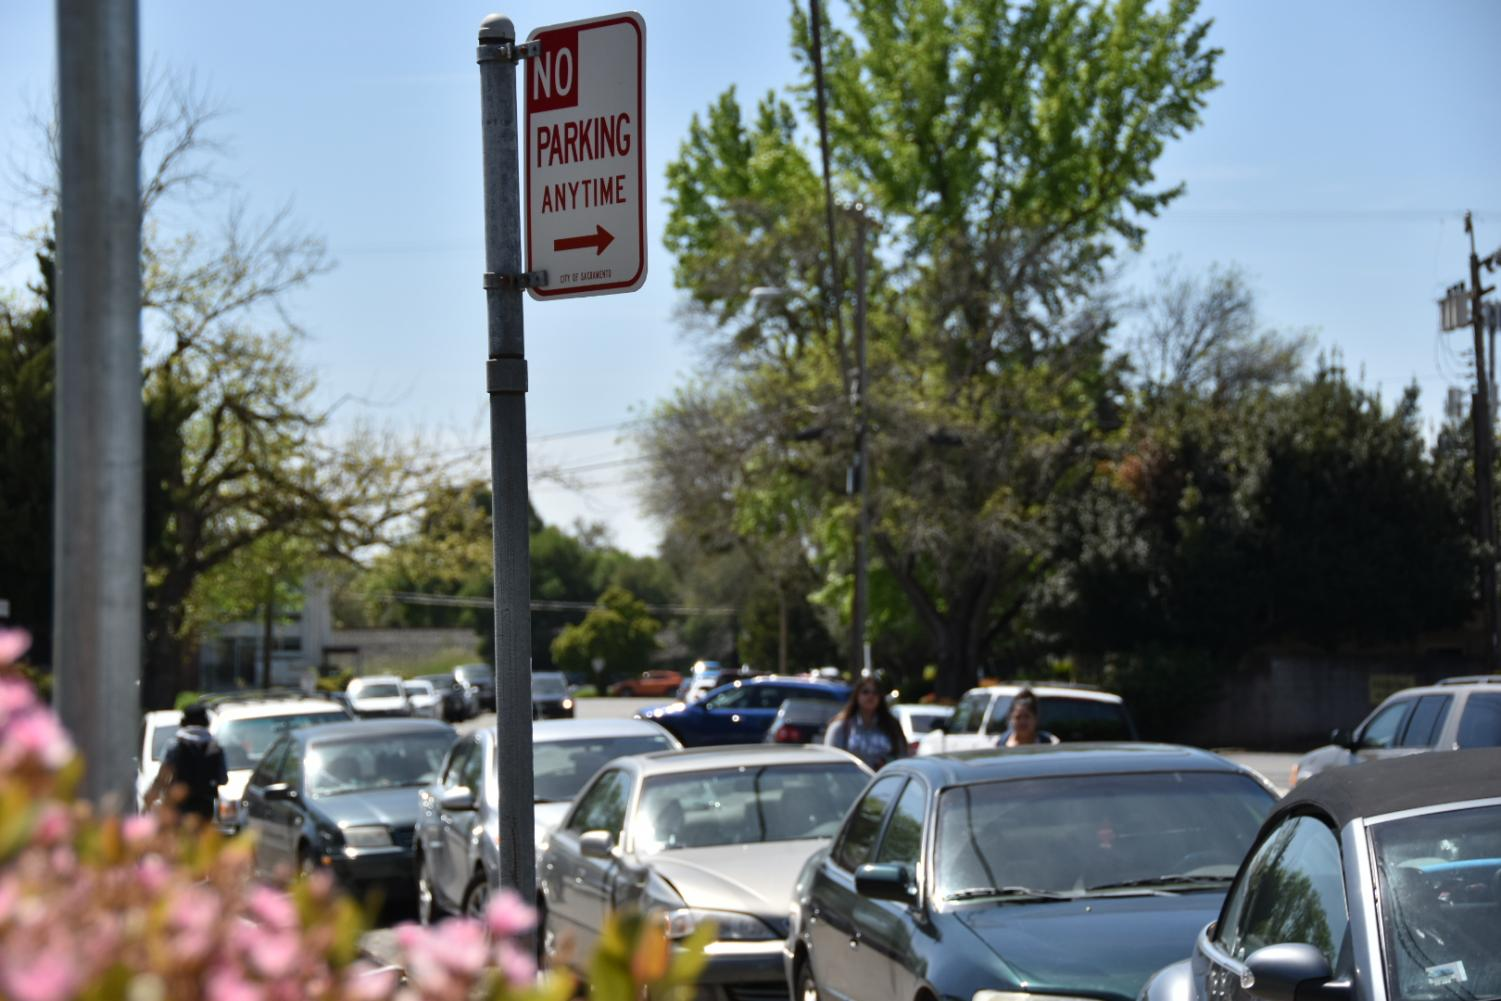 A 'No Parking' sign on Newman Court flanked by parked cars. Parking is legal anywhere behind the sign unless otherwise marked for emergency fire response or loading zones.